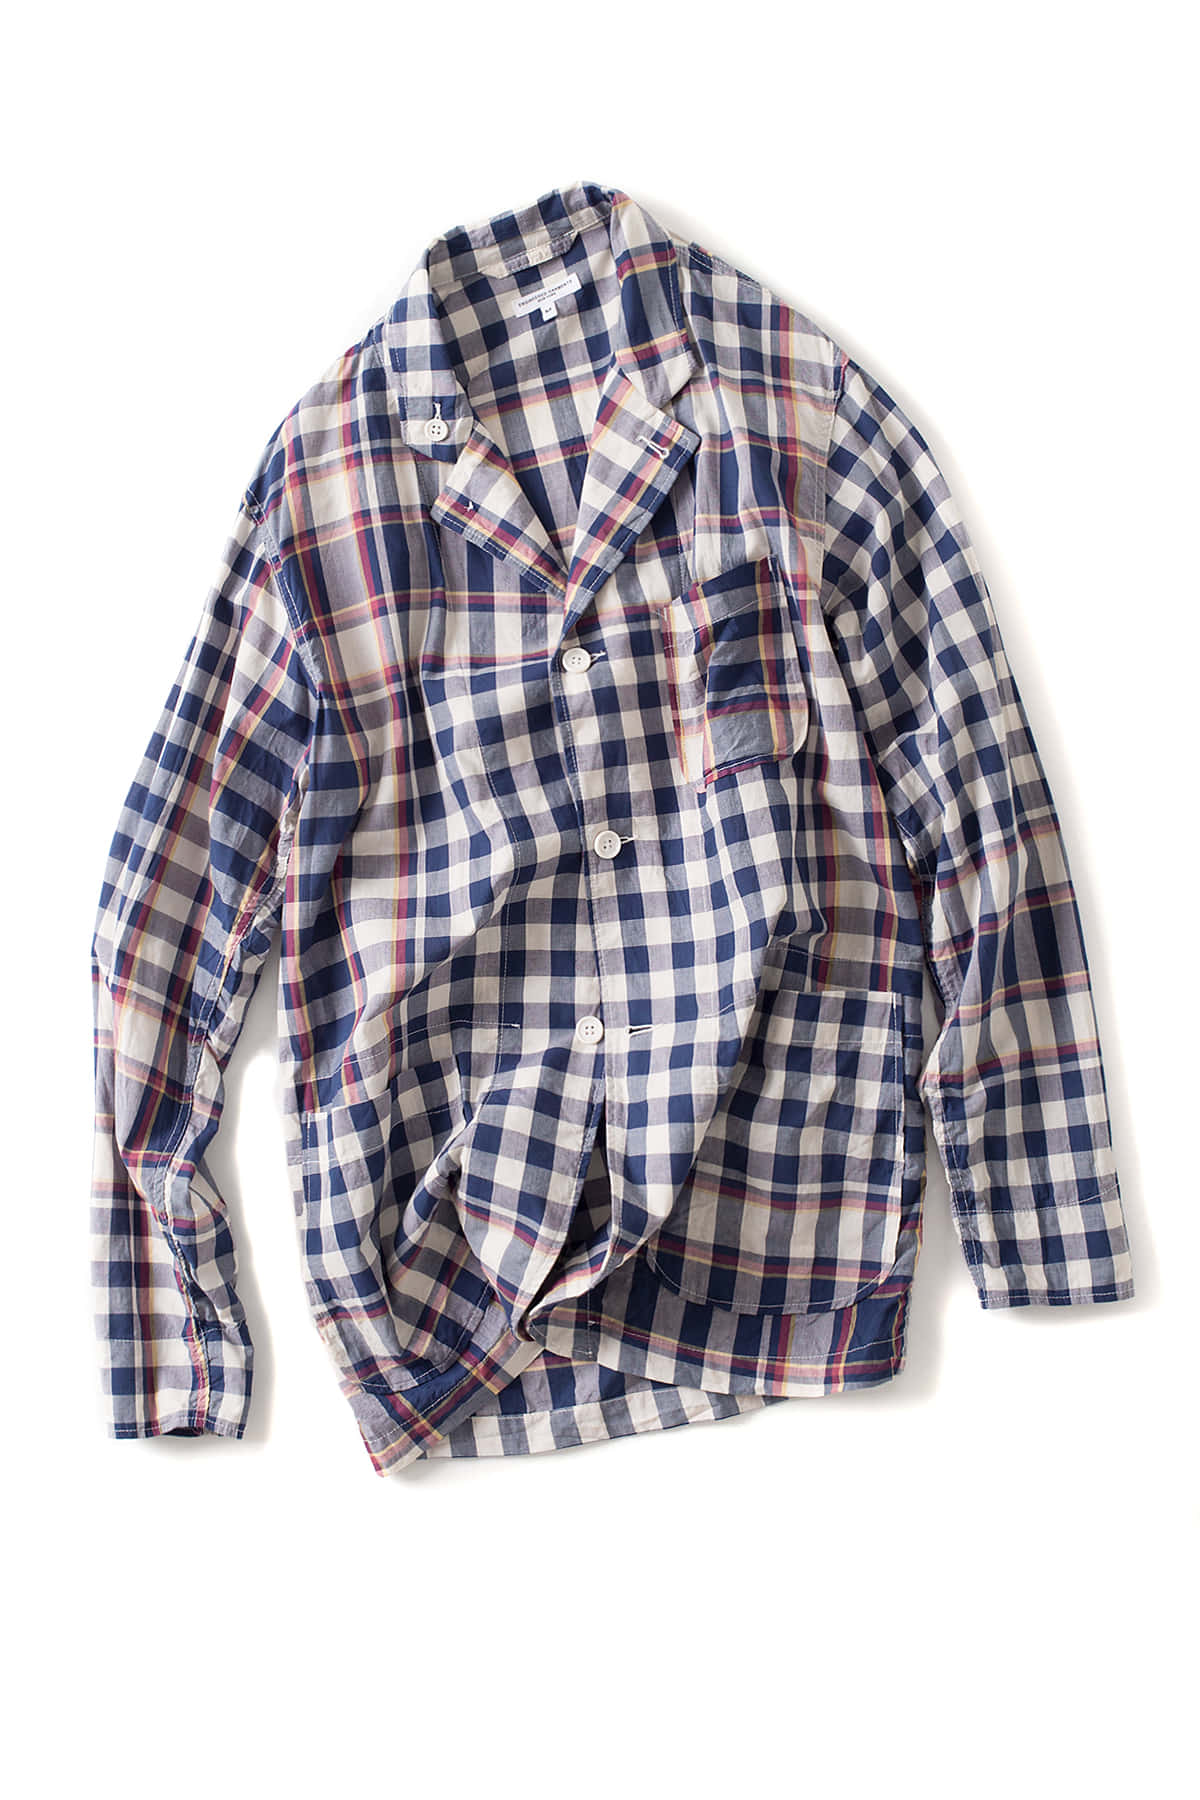 Engineered Garments : Loiter Jacket (Navy/Red/Yellow Big Plaid Modras)